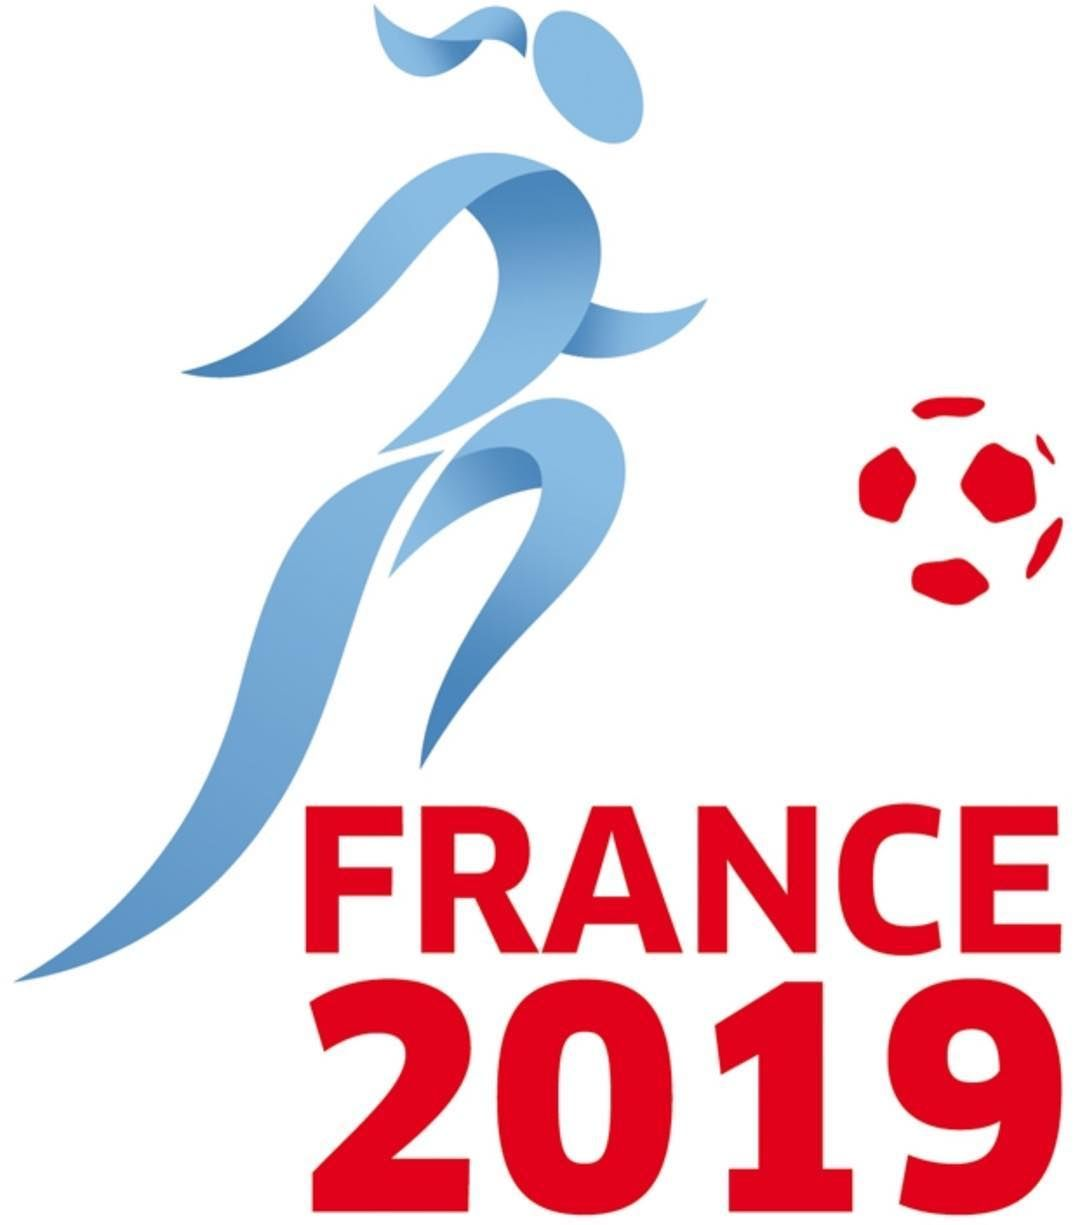 Fifa Women S World Cup The 2019 Fifa Women S World Cup Held In France Will Be The 8th Edition Of The Fifa Women World Cup Women S World Cup World Cup Logo